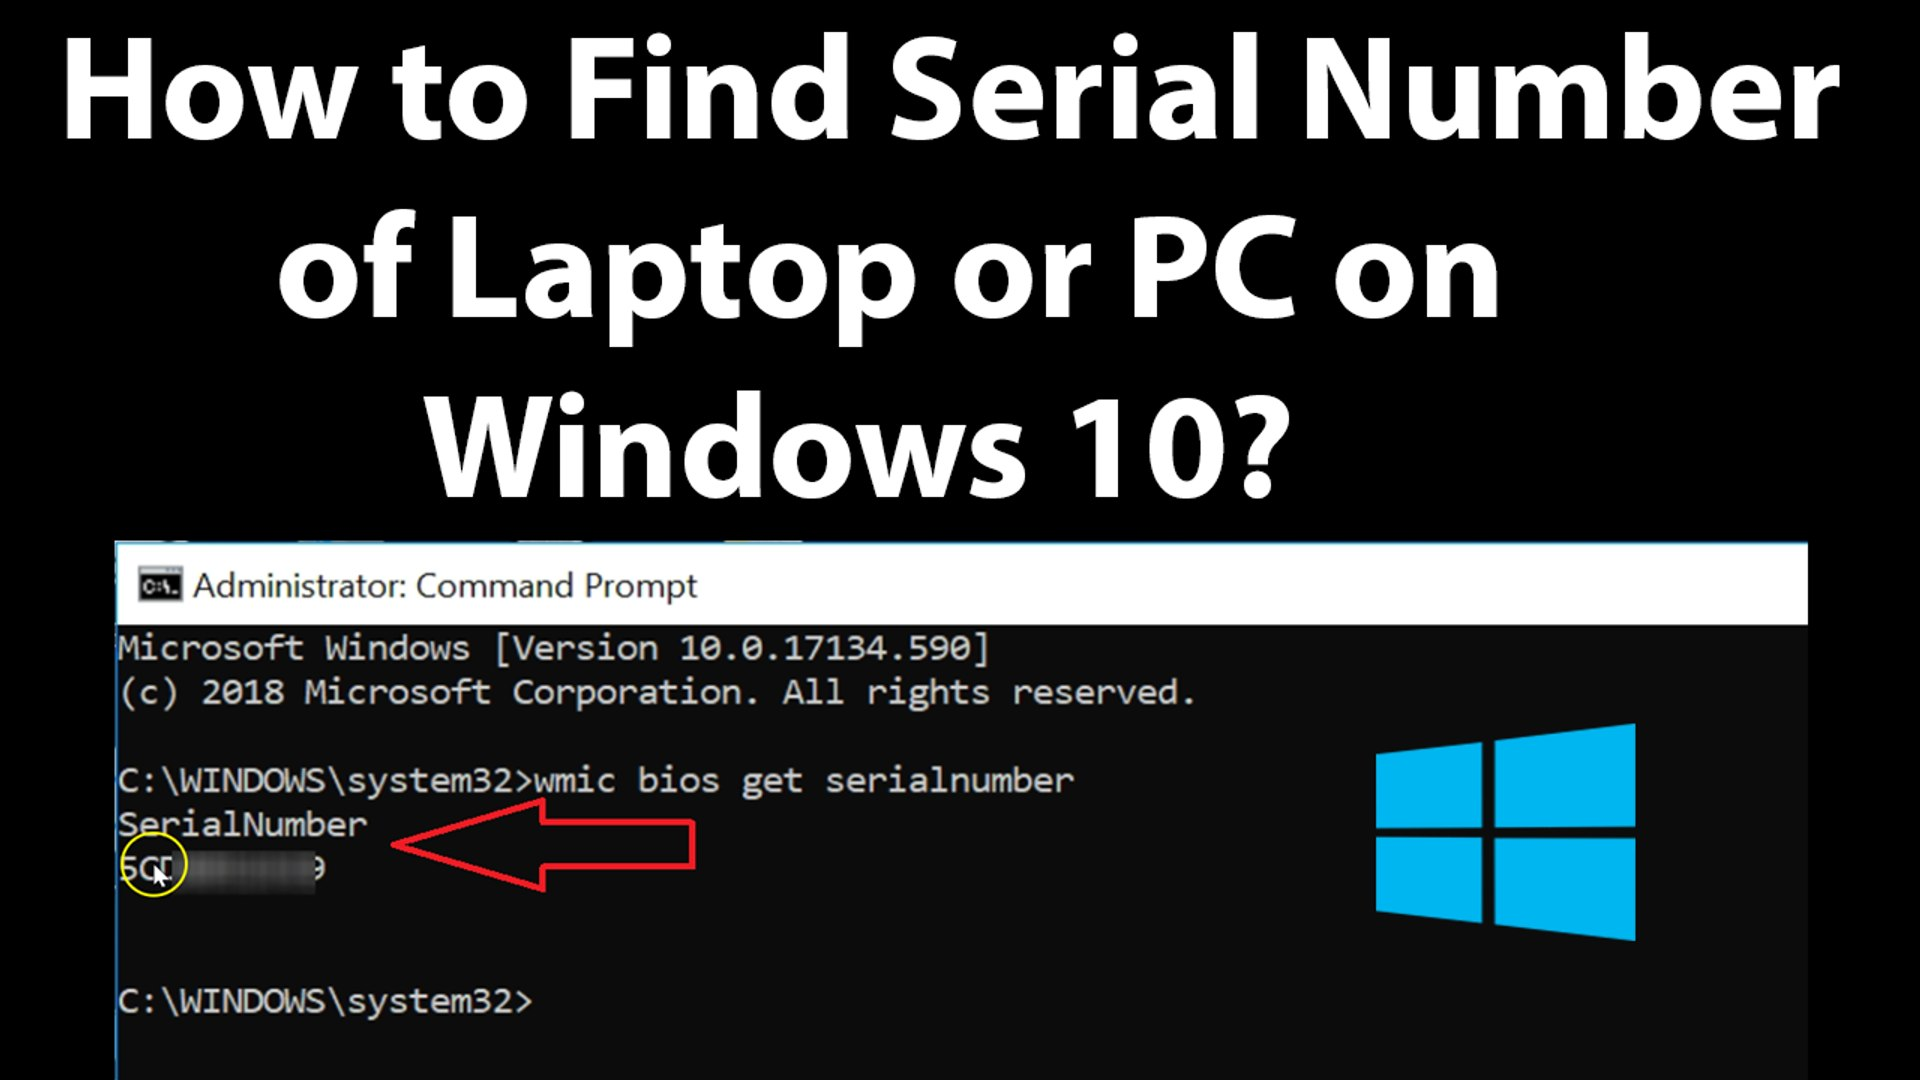 How to Find Serial Number of Laptop or PC on Windows 10?